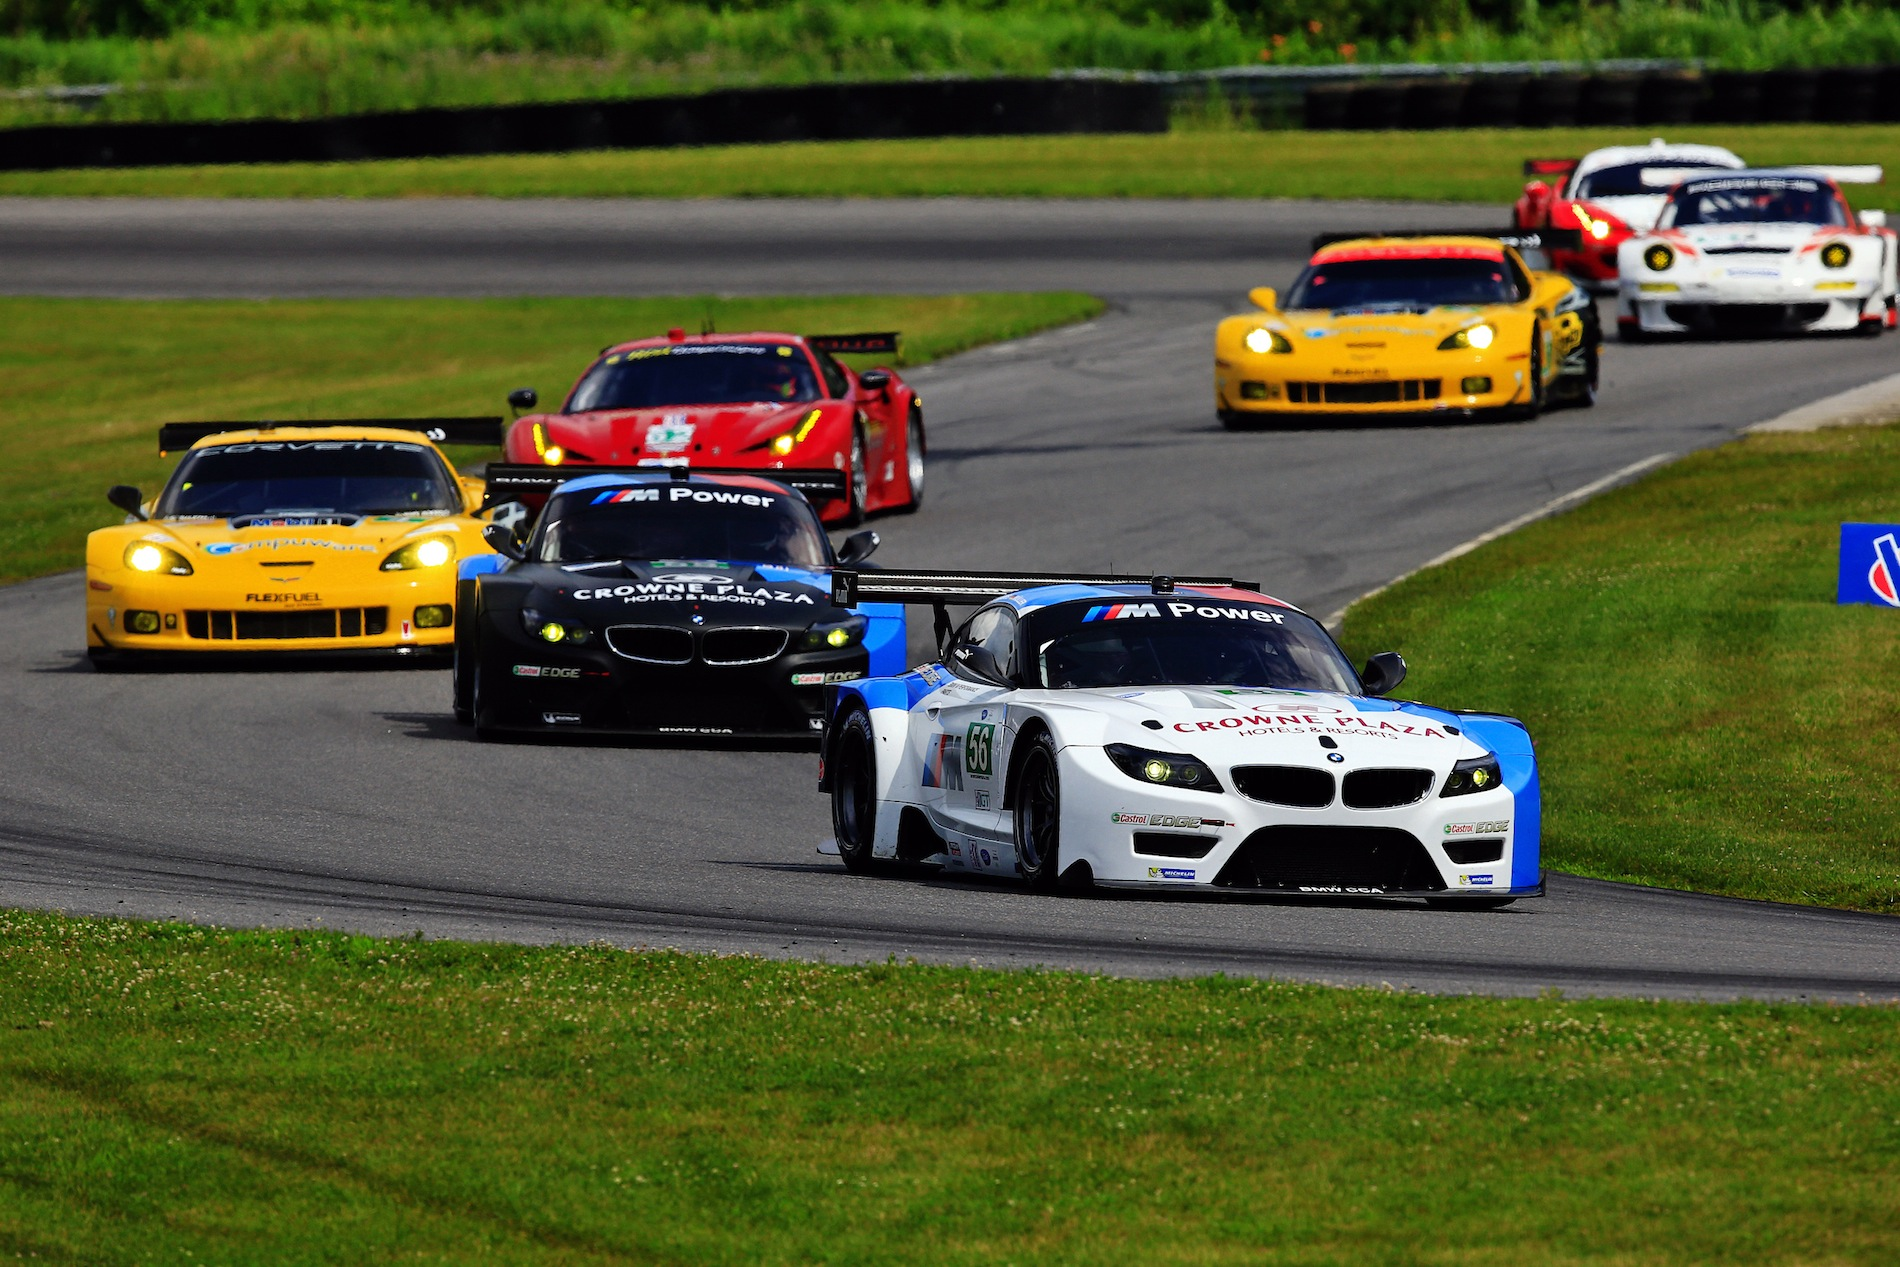 bmw z4 gte wins alms northeast grand prix at lime rock. Black Bedroom Furniture Sets. Home Design Ideas